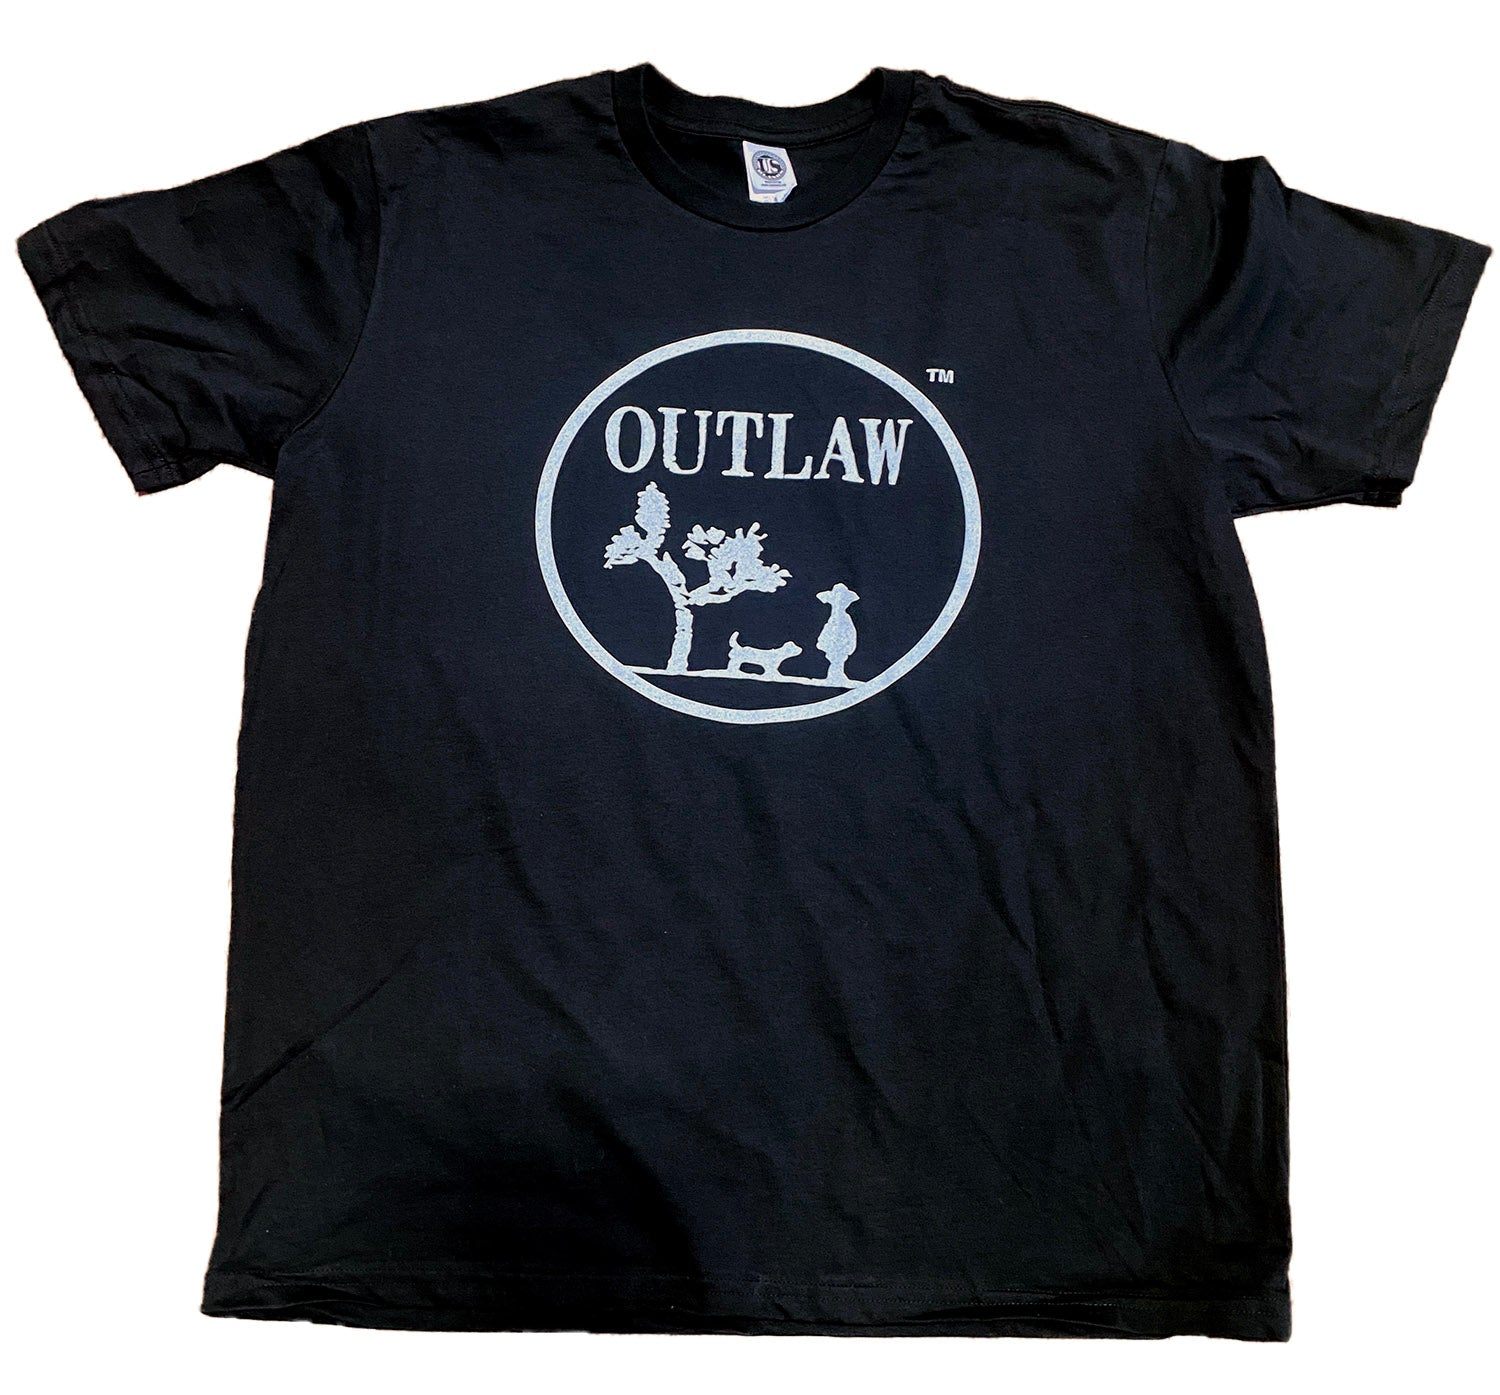 Outlaw T-Shirts: the best outfit for a real Outlaw